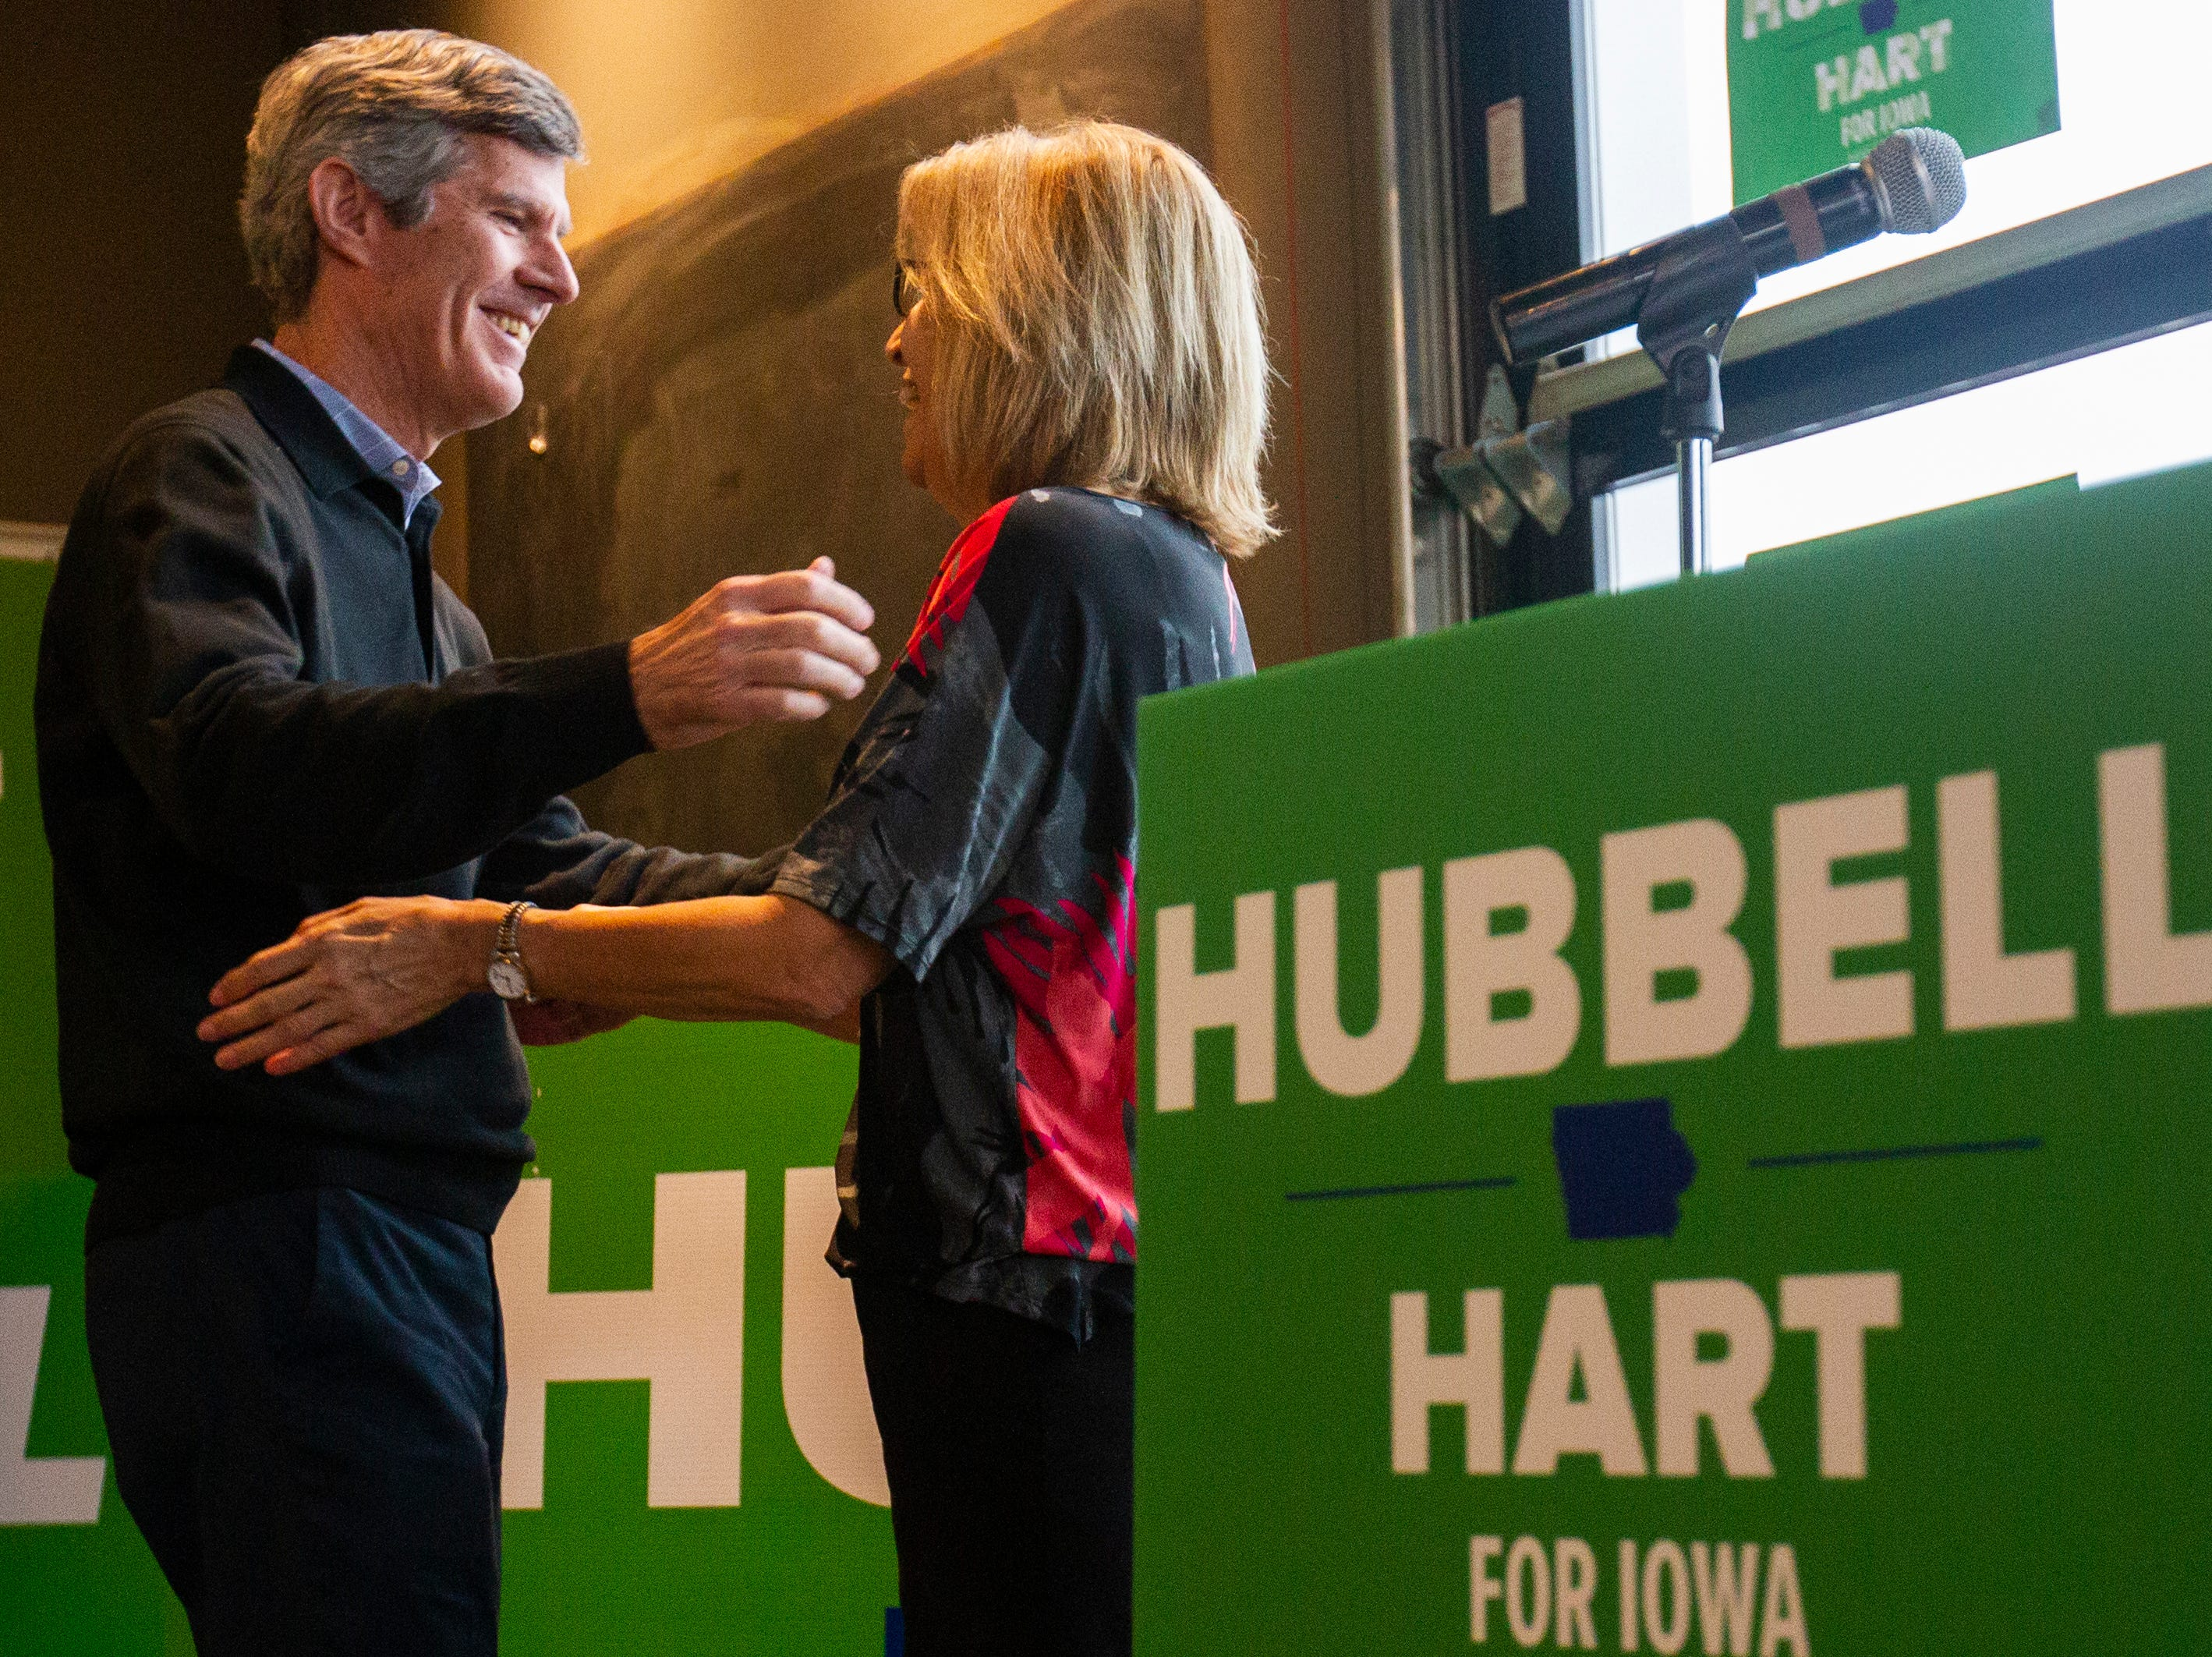 Fred Hubbell, Iowa Democratic candidate for governor, embraces his running mate Rita Hart before he speaks during a rally on Sunday, Nov. 4, 2018, at Big Grove Brewery in Iowa City.